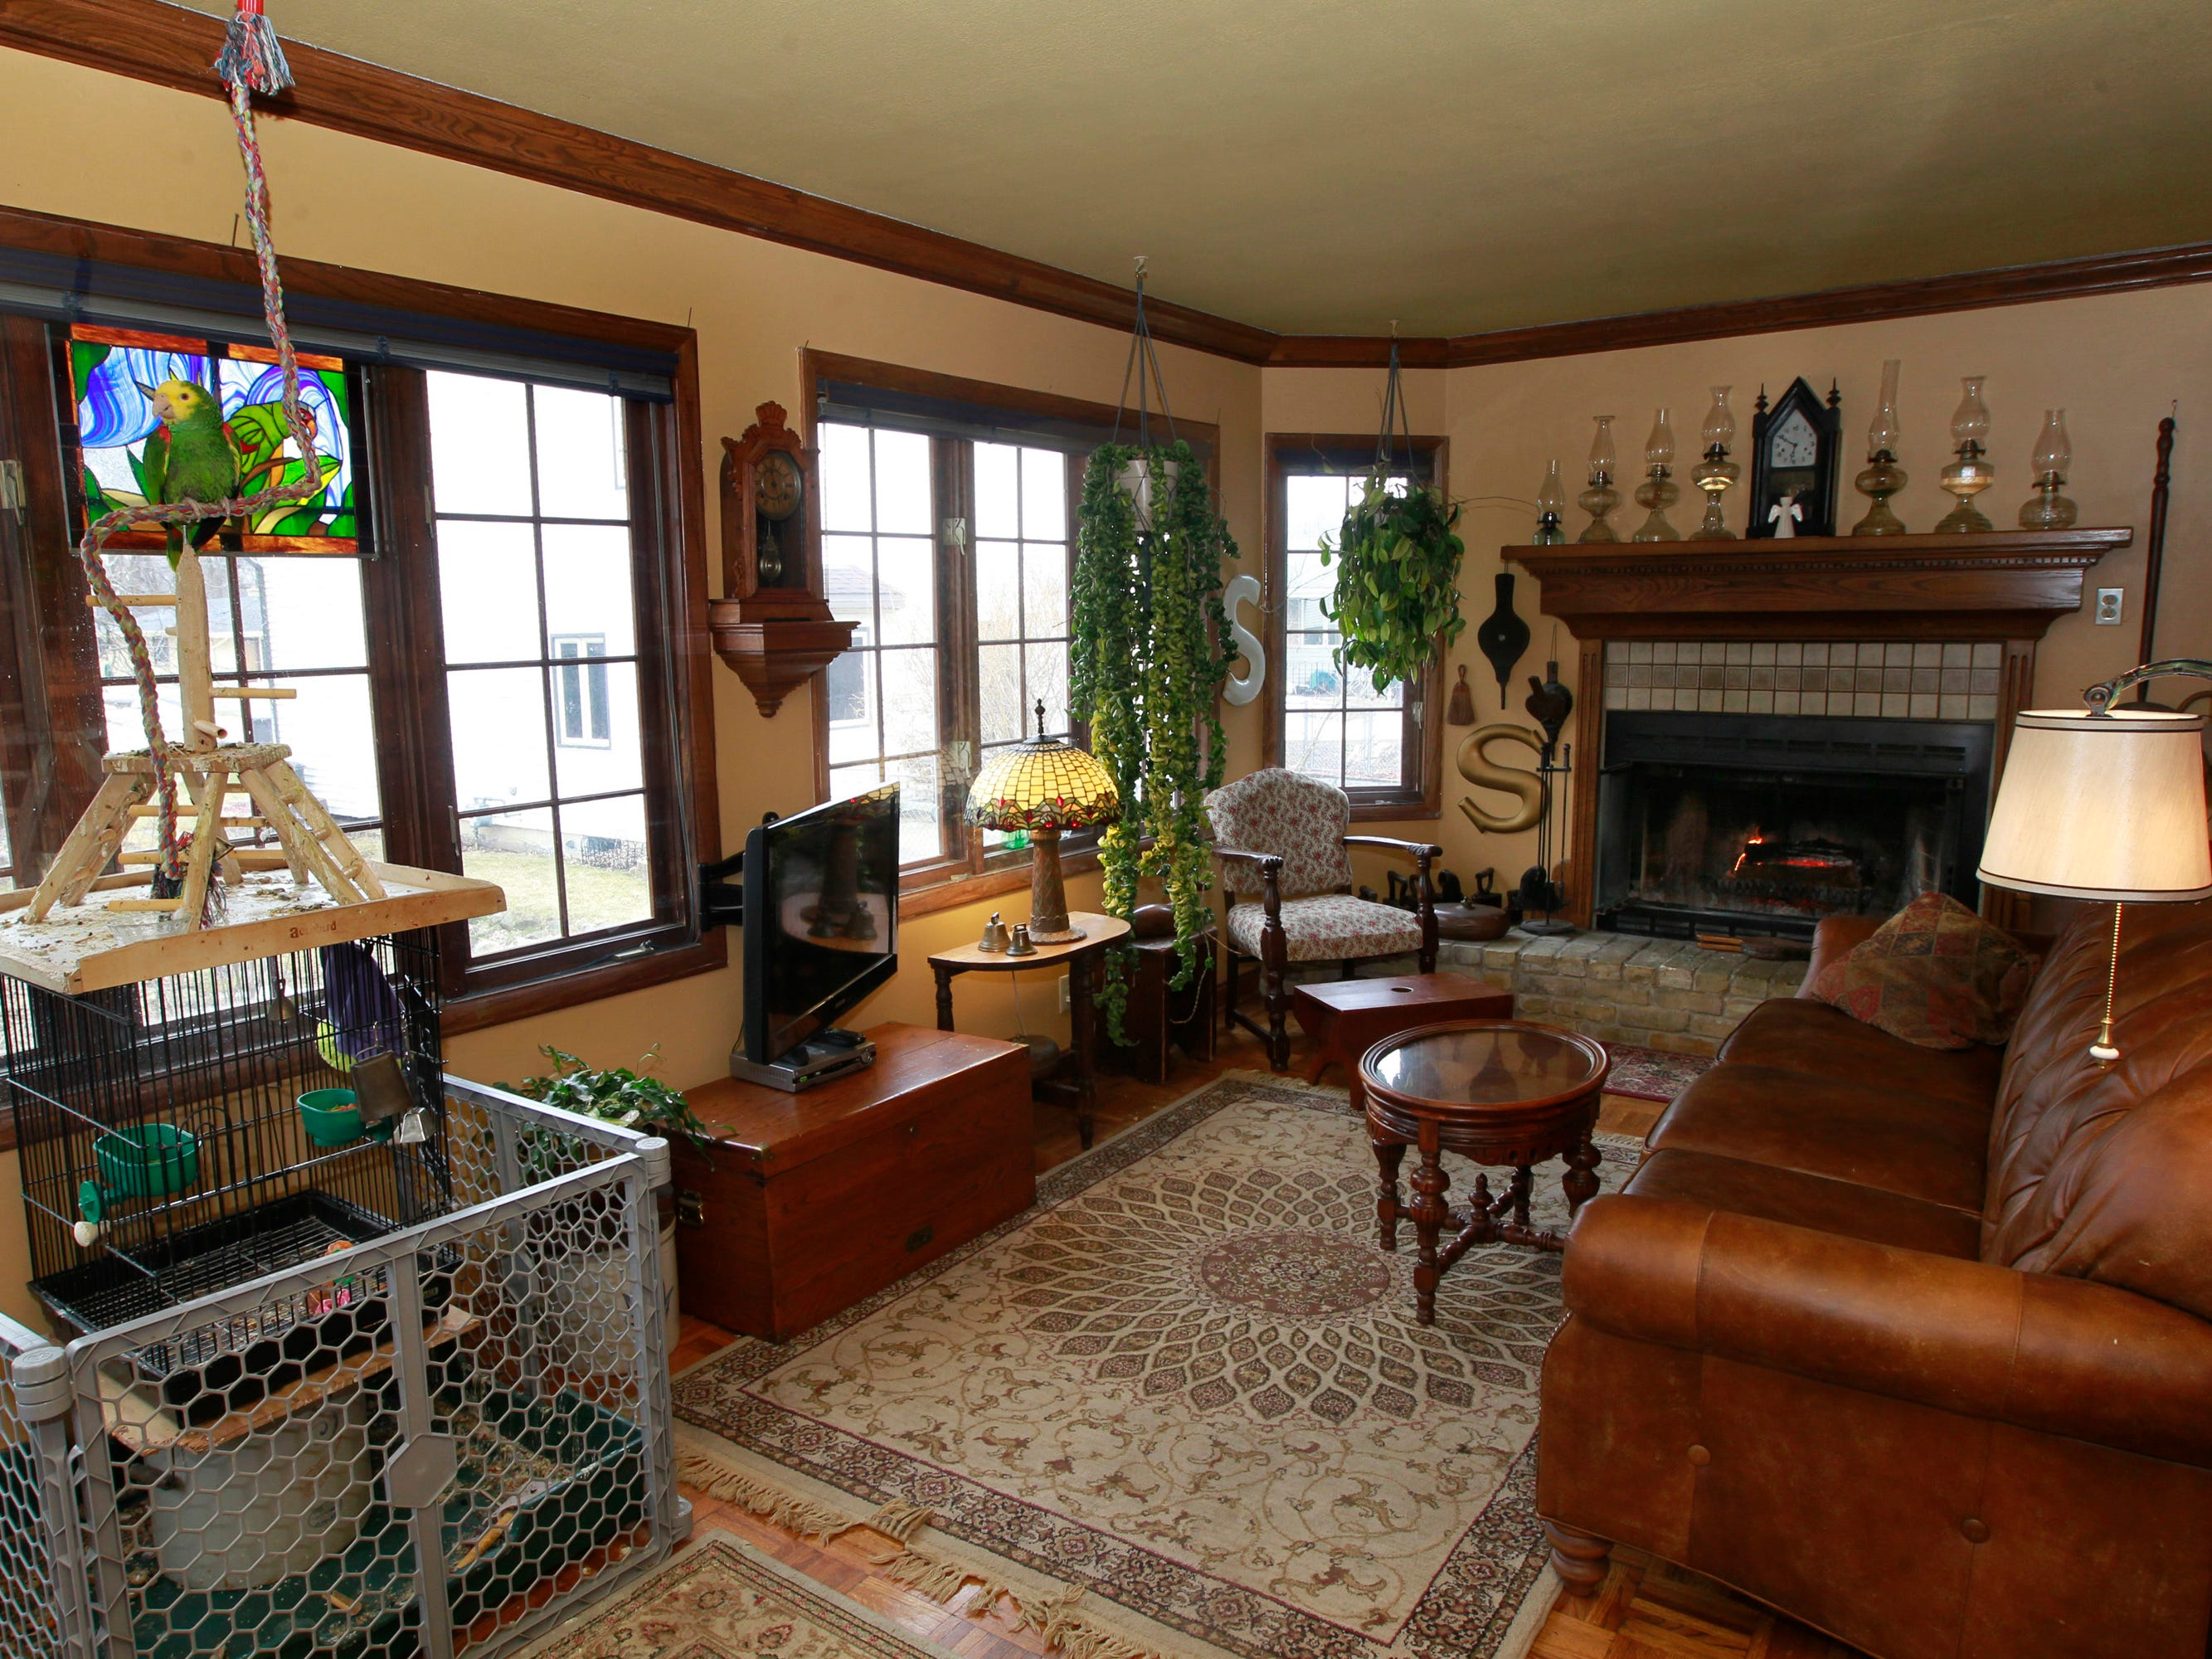 The sun room features a cozy fireplace and lots of natural light.  It is also the home for their talking pet parrot, Gerty.